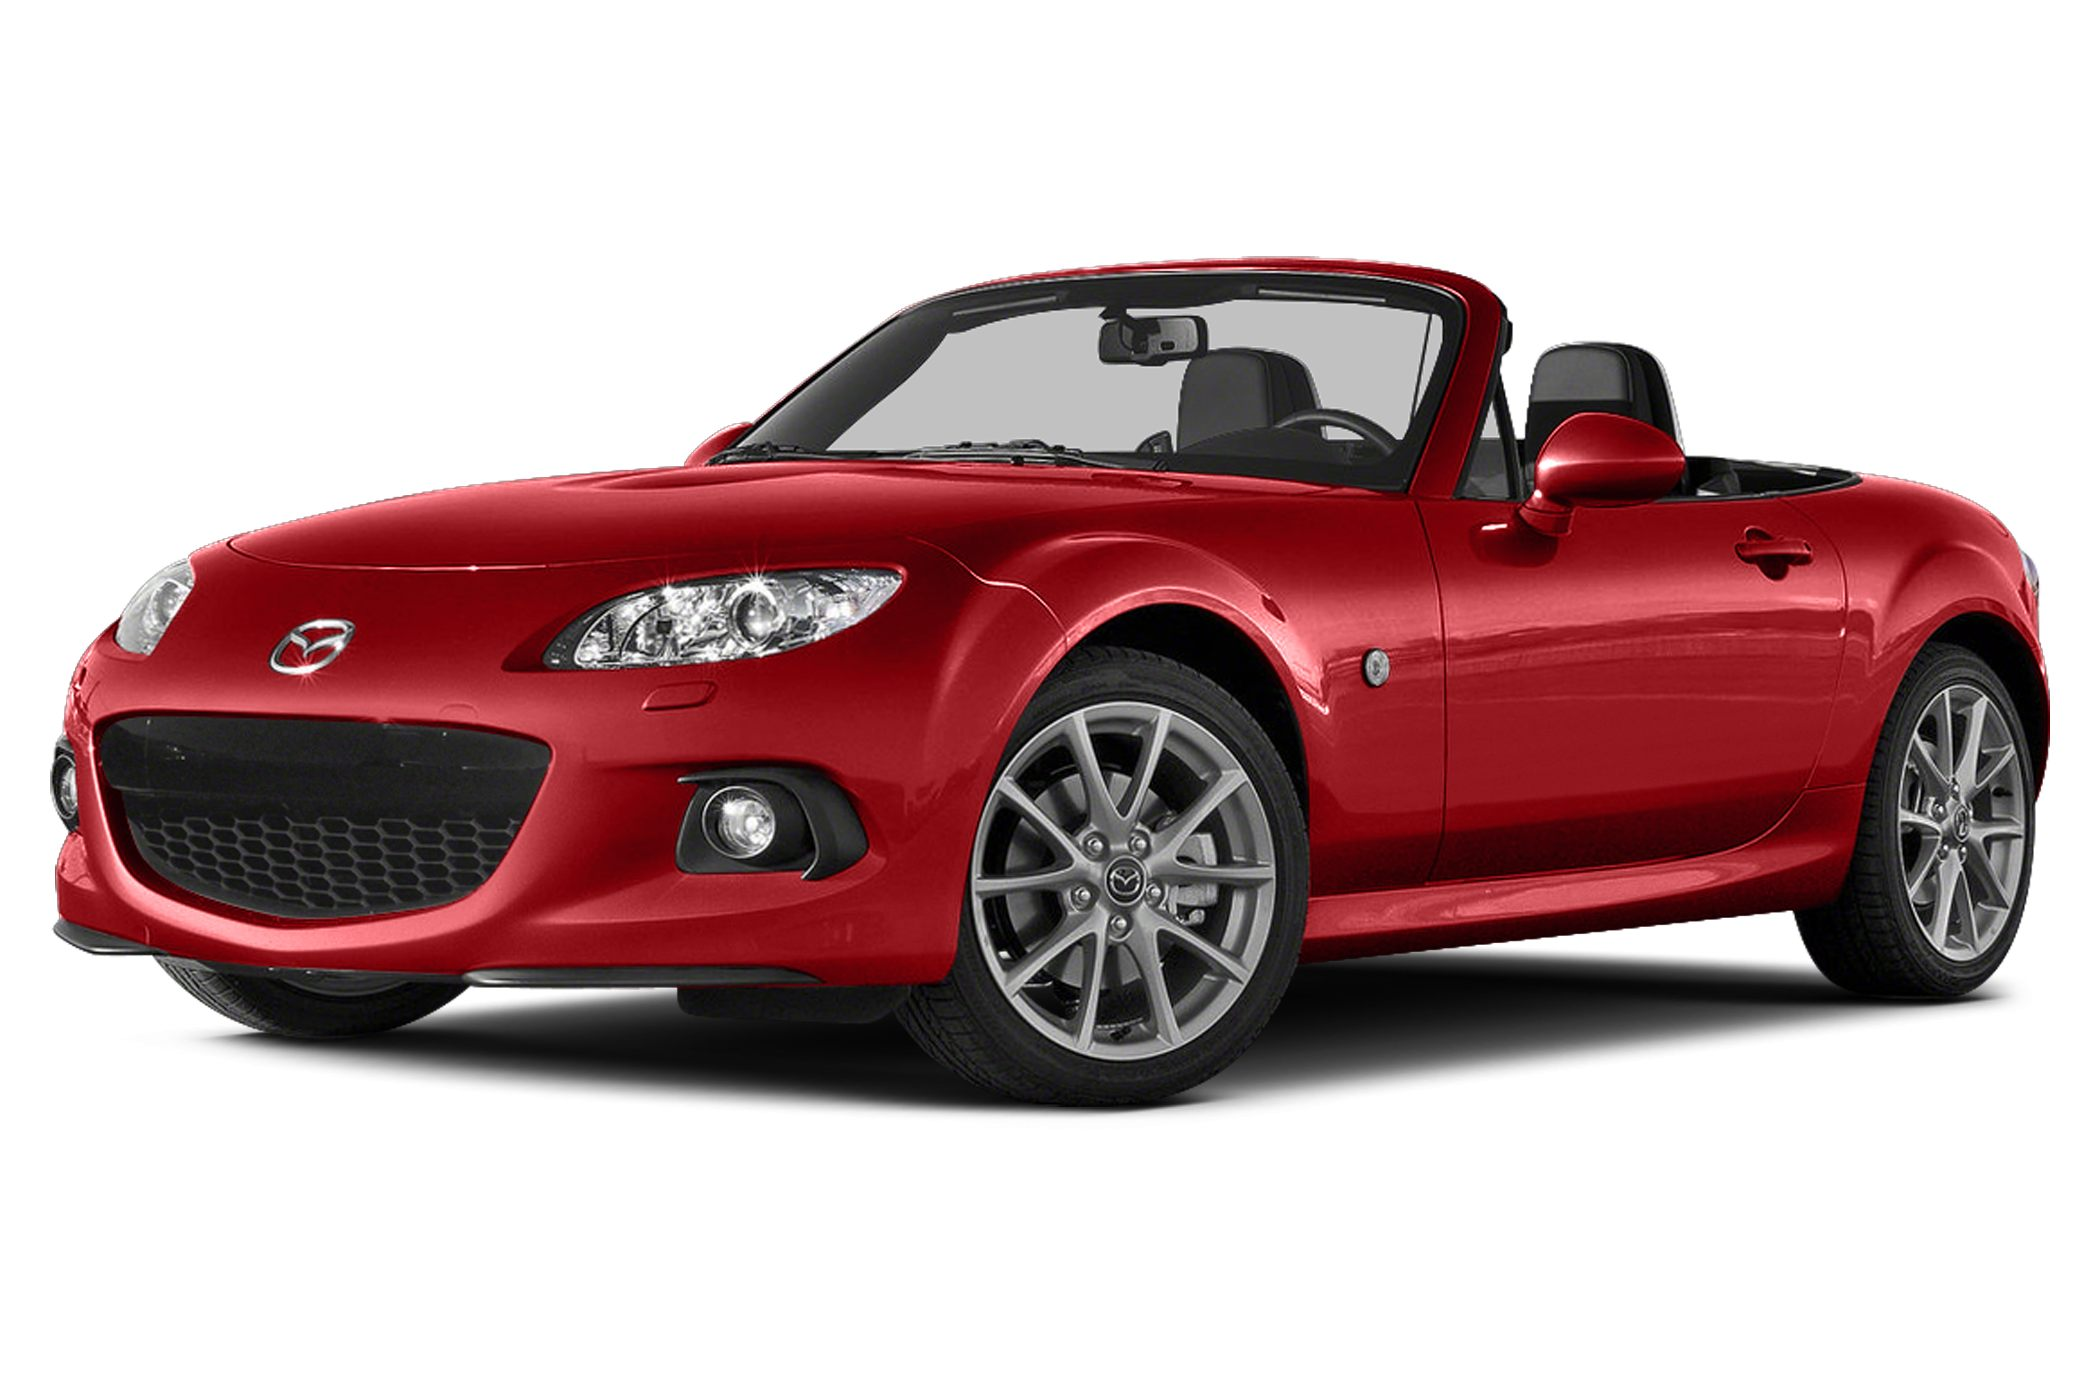 2013 Mazda Miata MX-5 Club Convertible for sale in Johnstown for $26,997 with 5,000 miles